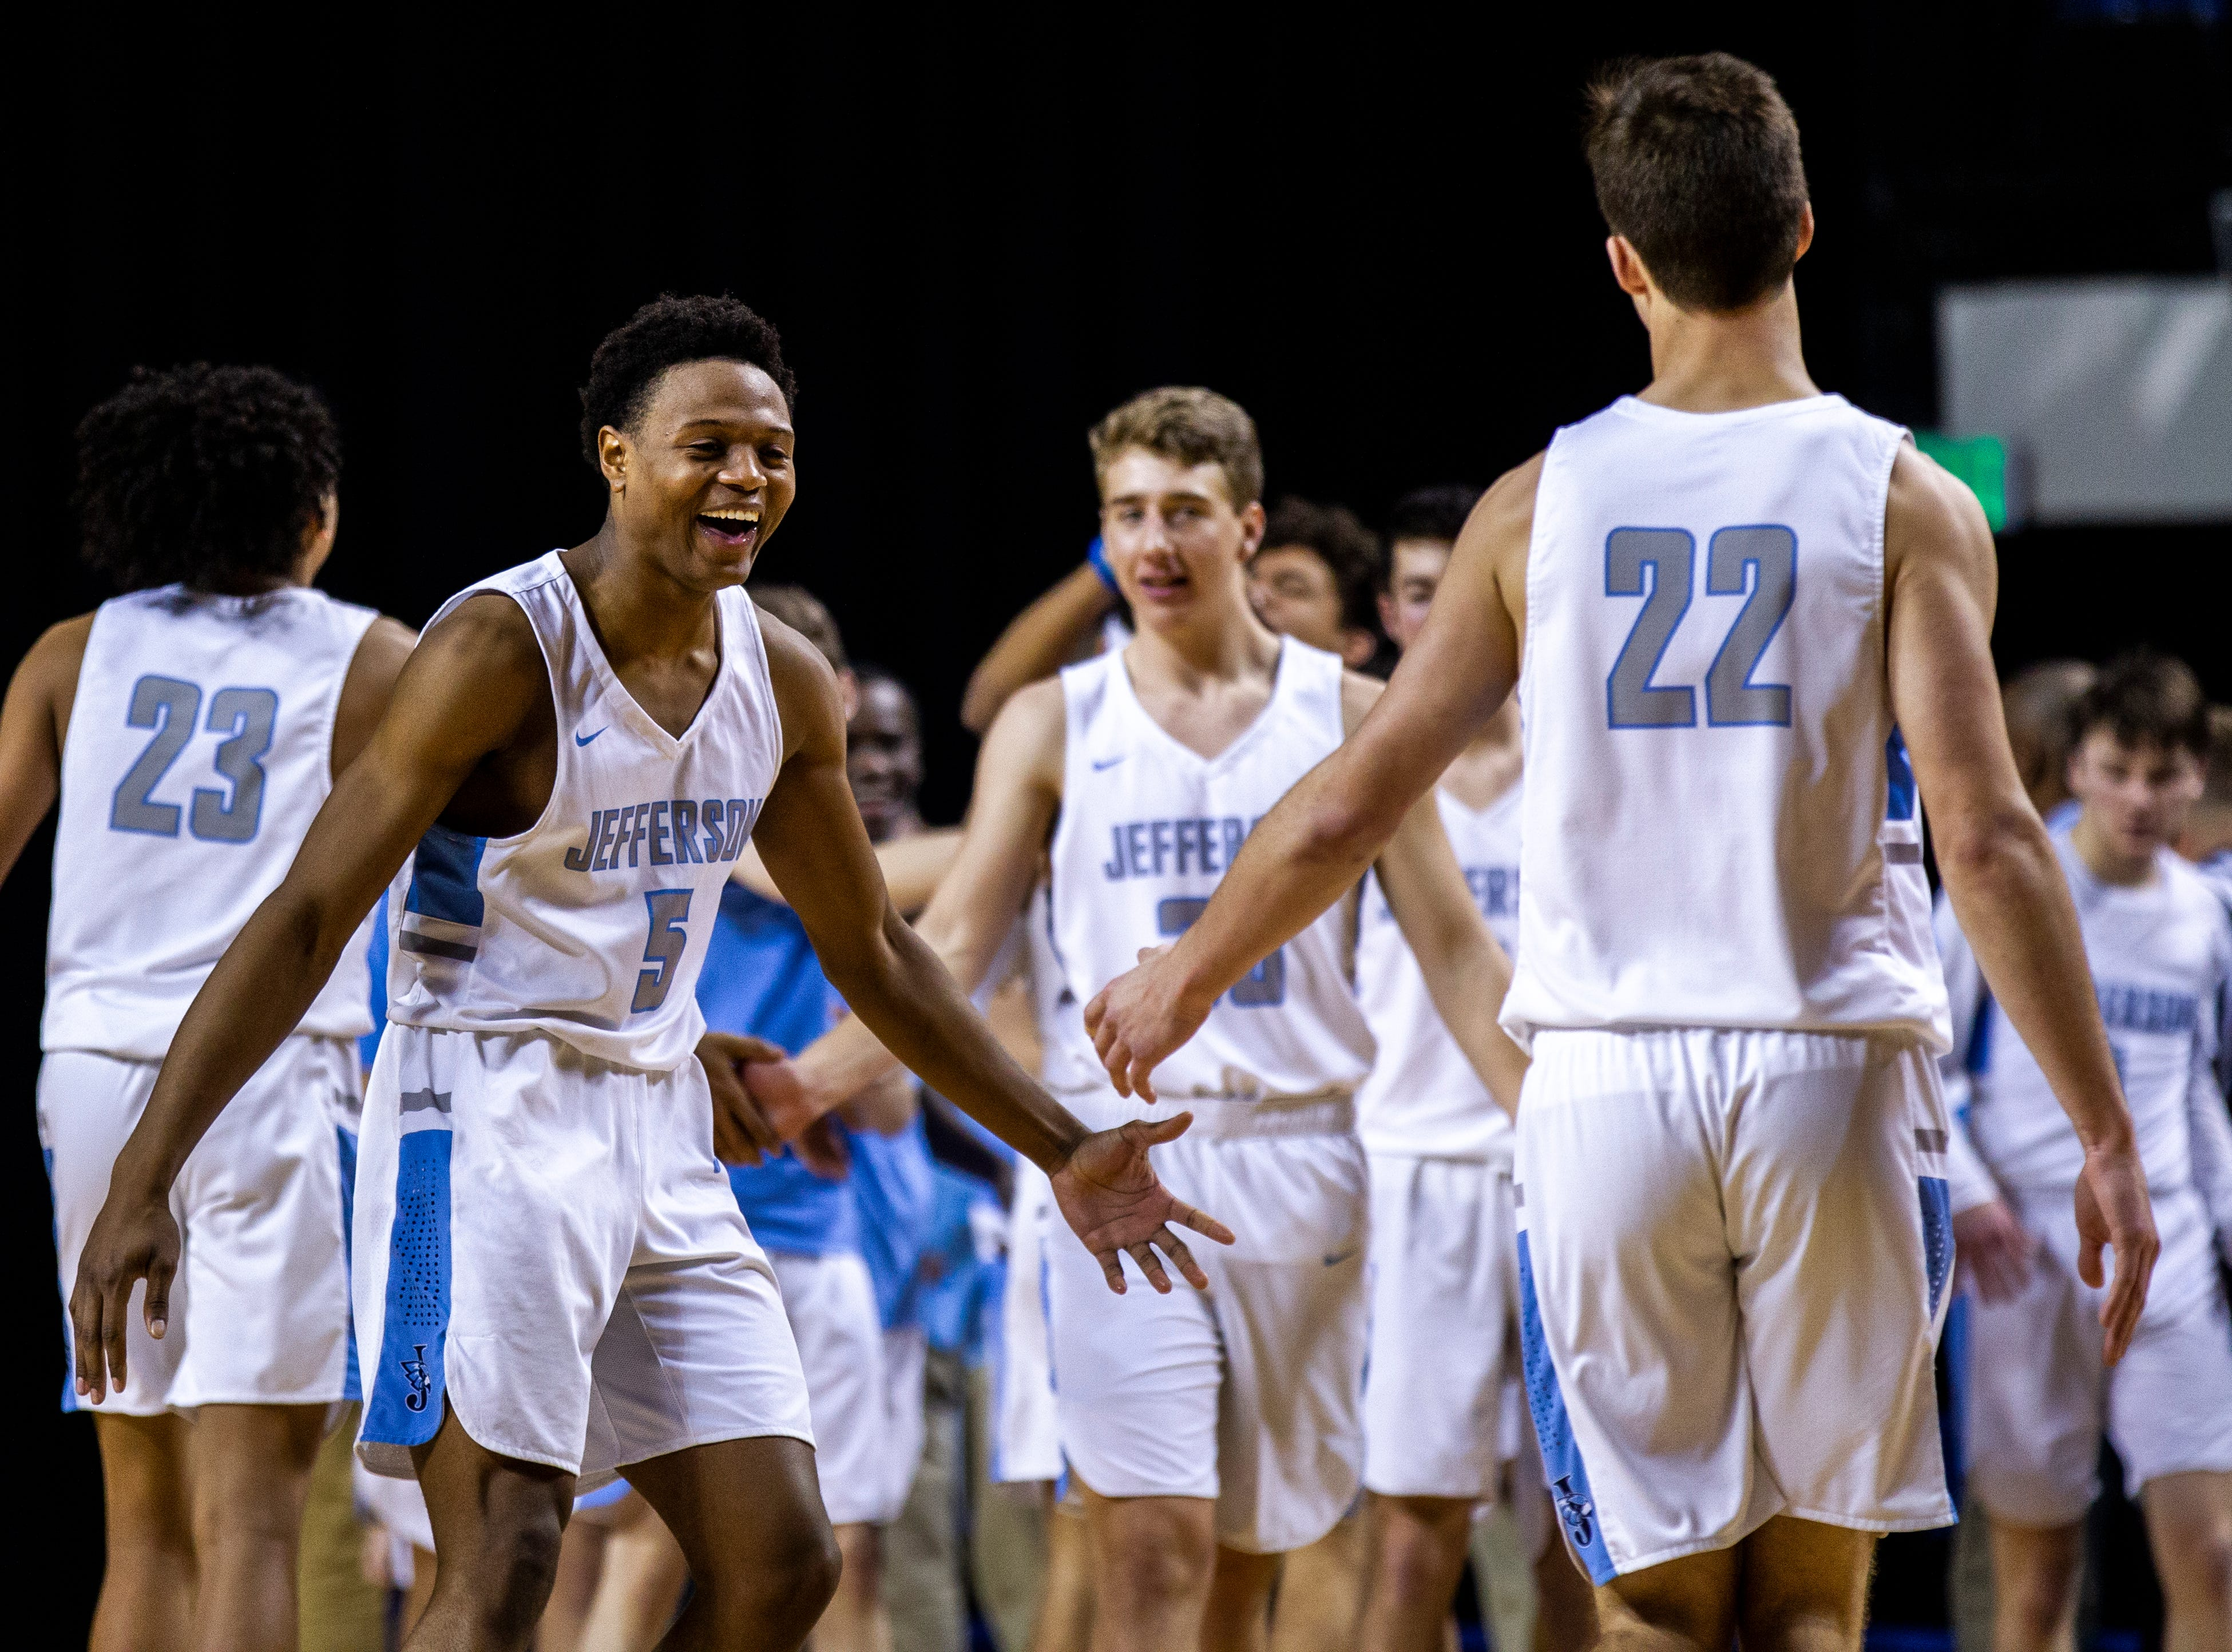 Cedar Rapids Jefferson's 	Raejzuan Shockley (5) celebrates with 	Jackson Snyder (22) after a boys' basketball game in the Wells Fargo Advisors Shootout on Saturday, Jan. 19, 2019, at the U.S. Cellular Center in Cedar Rapids, Iowa.